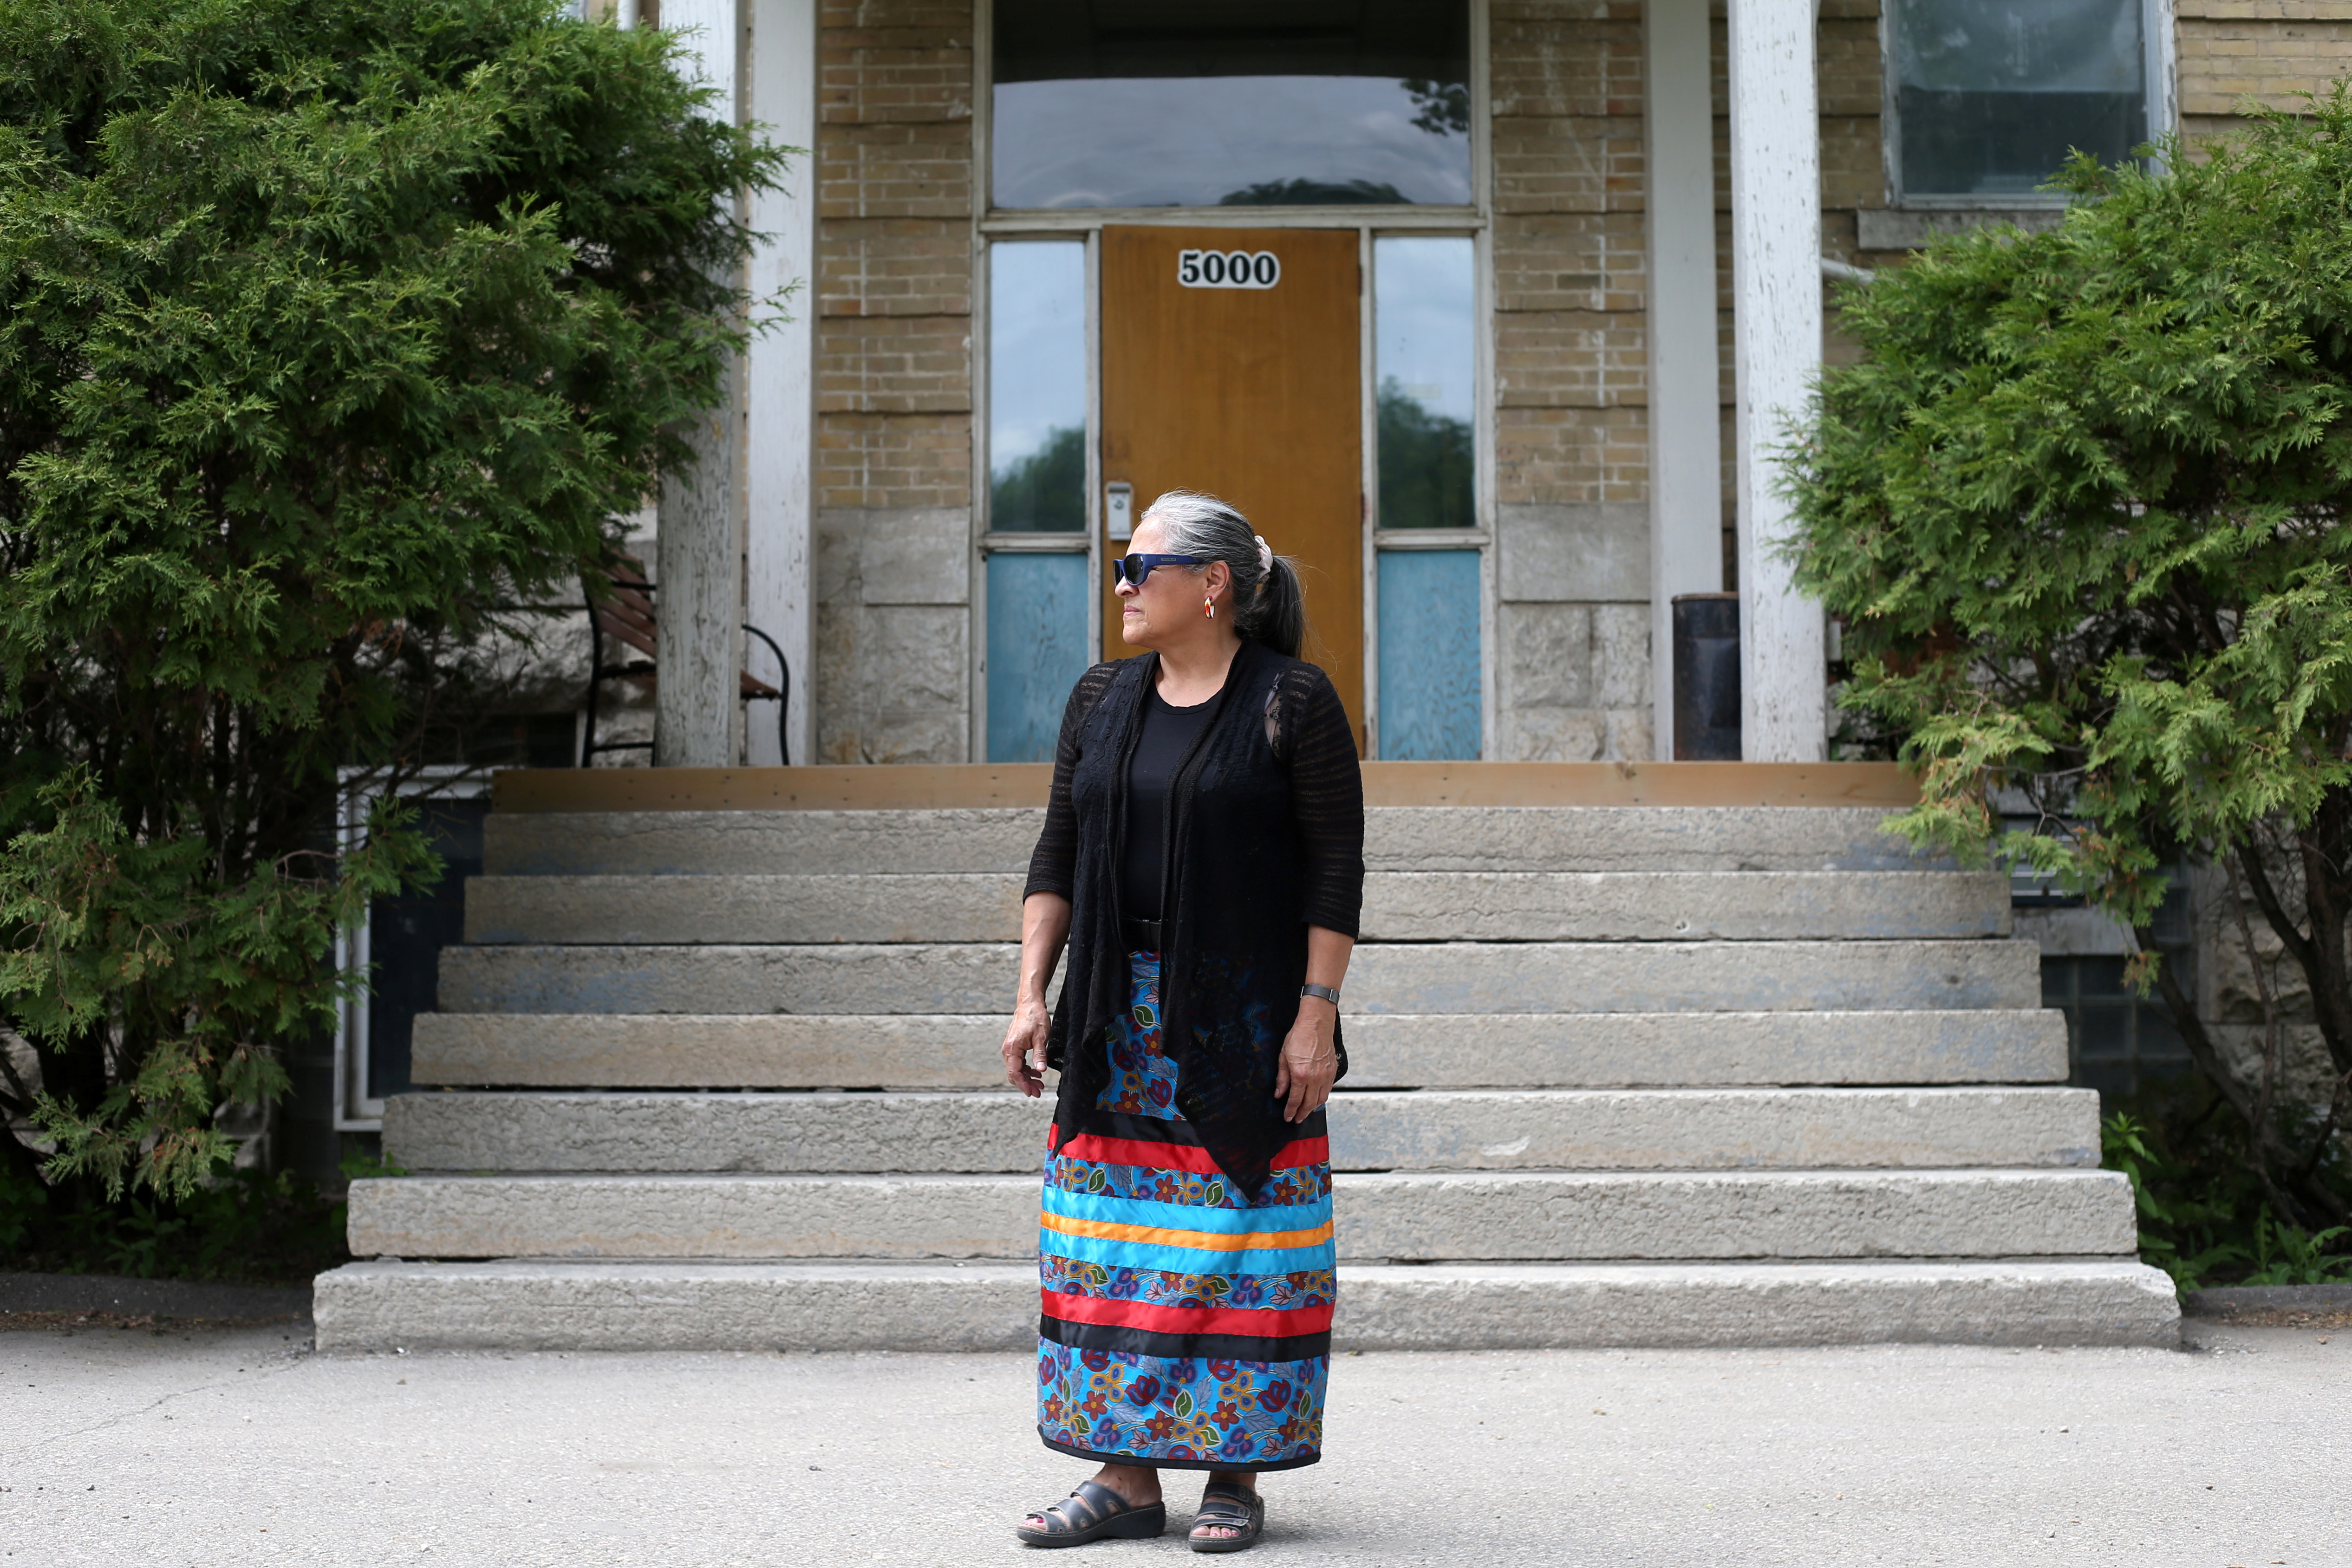 Lorraine Daniels, executive director of The Indian Residential School Museum of Canada, poses at the former Portage La Prairie Indian Residential School in Portage La Prairie, Manitoba, Canada, June 8, 2021. Picture taken June 8, 2021. REUTERS/Shannon VanRaes